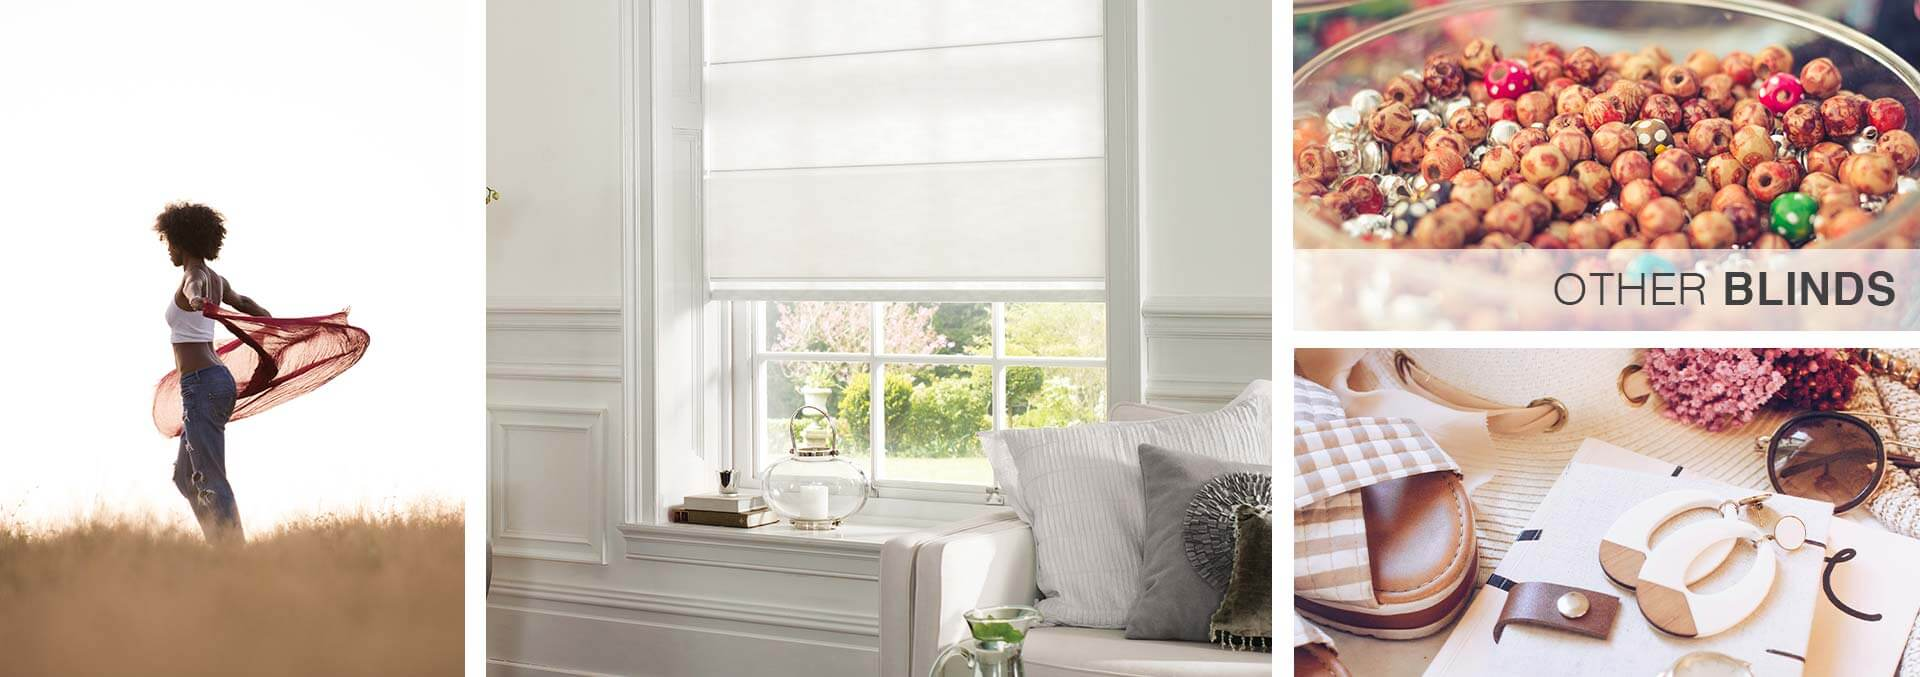 Other Blind Products, Other Blinds, Blind Designs